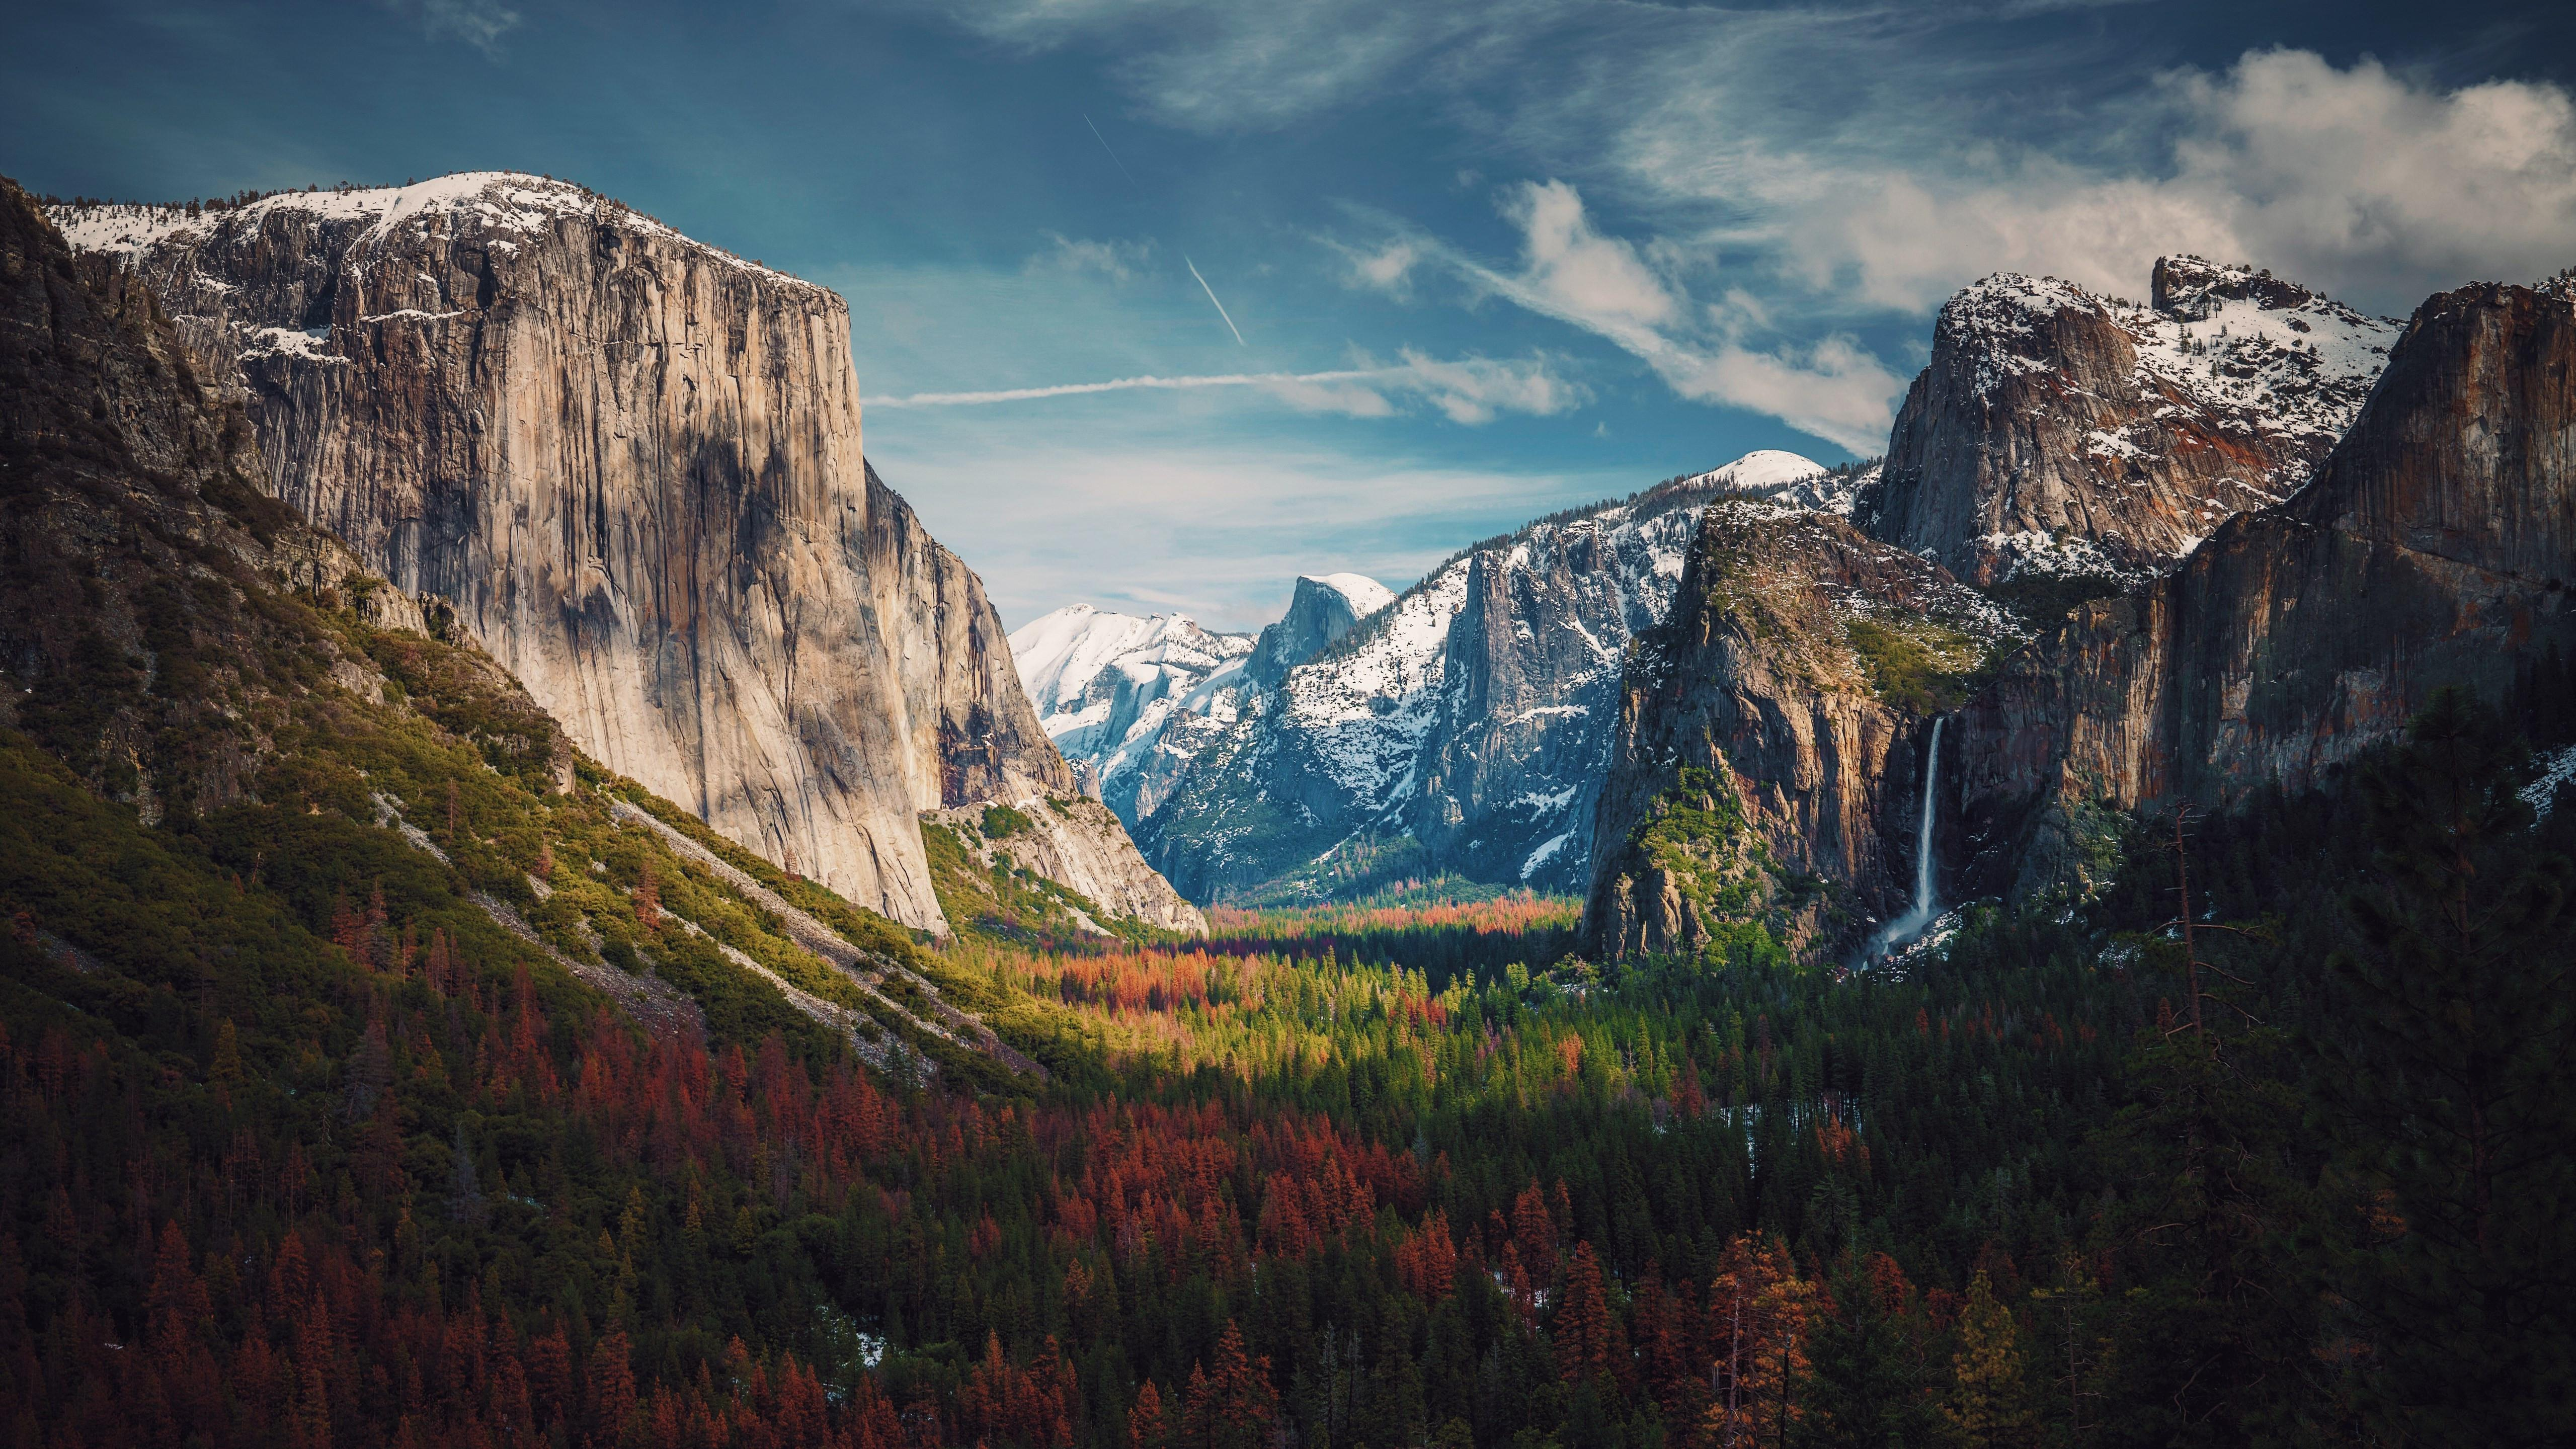 Download wallpaper: Best View from Yosemite 5120x2880